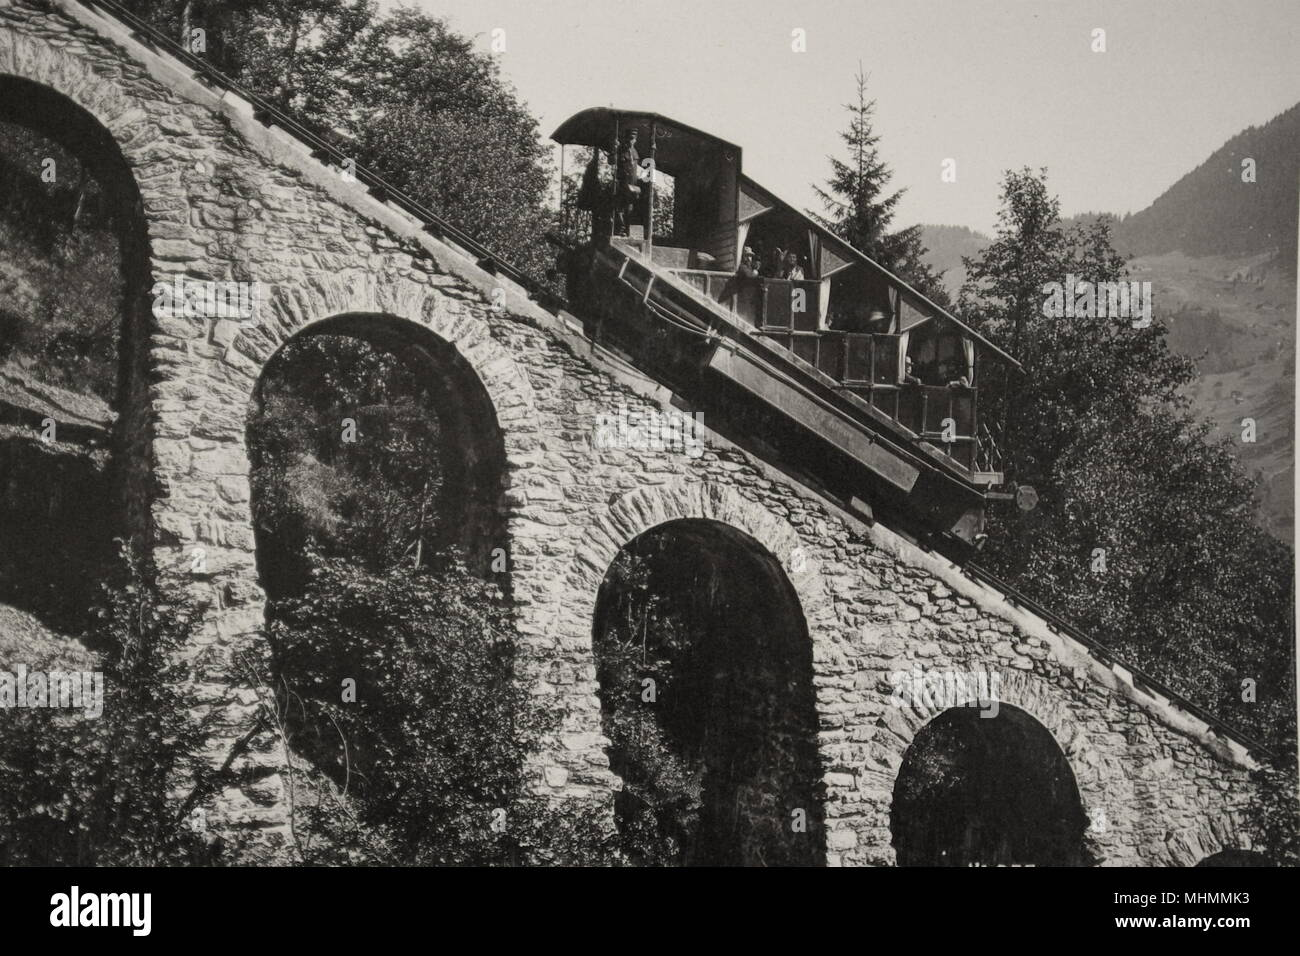 A funicular railway operating on the Grand Viaduct at Murren in Switzerland.  From the archives of the Gloucester Coach and Wagon Works in the Gloucester Record Office.      Date: circa 1900 - Stock Image